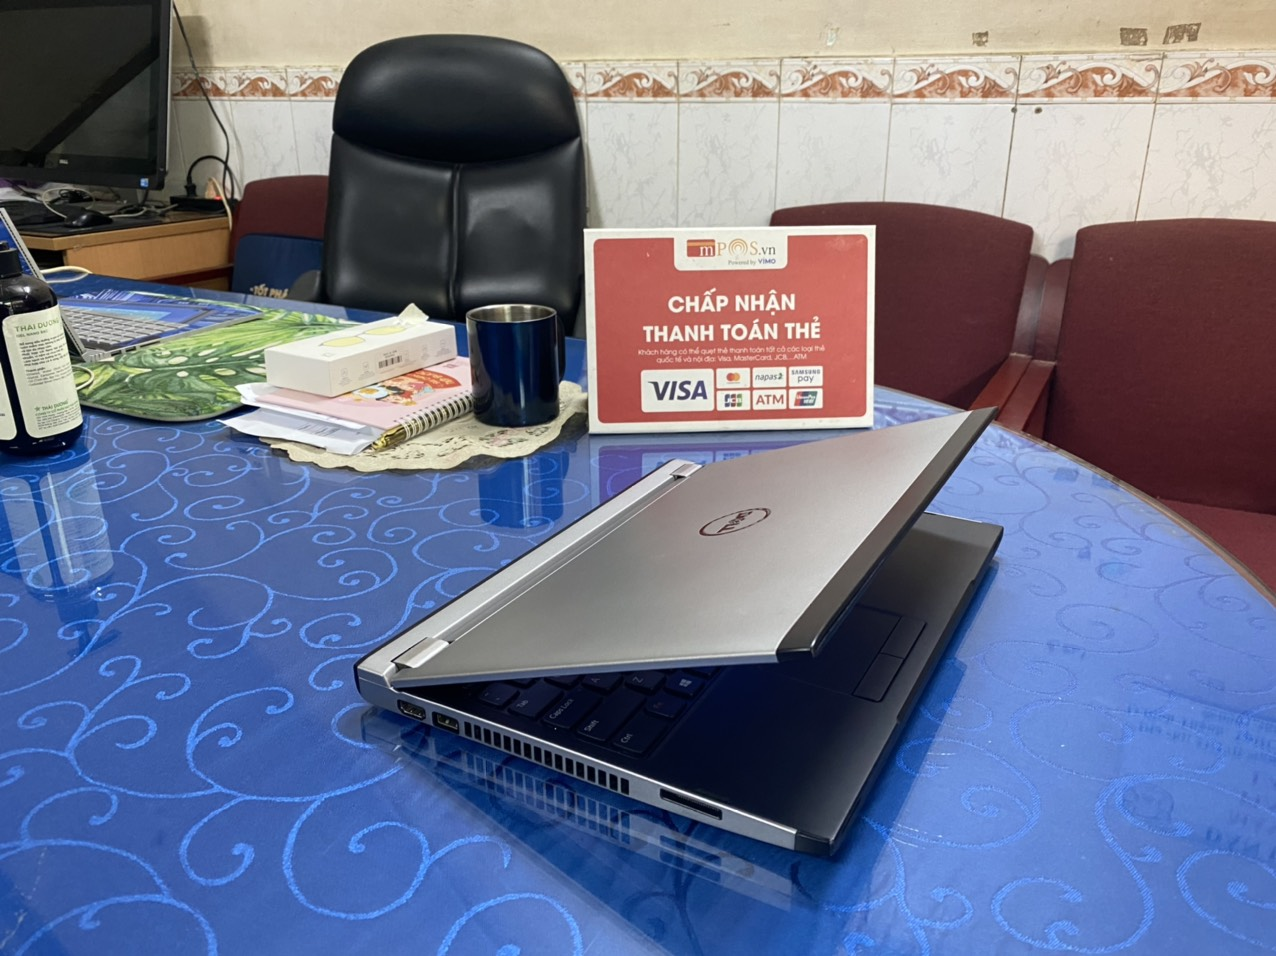 DELL LATITUDE 3330 I3 2375M 4GB 128GB SSD 13.3